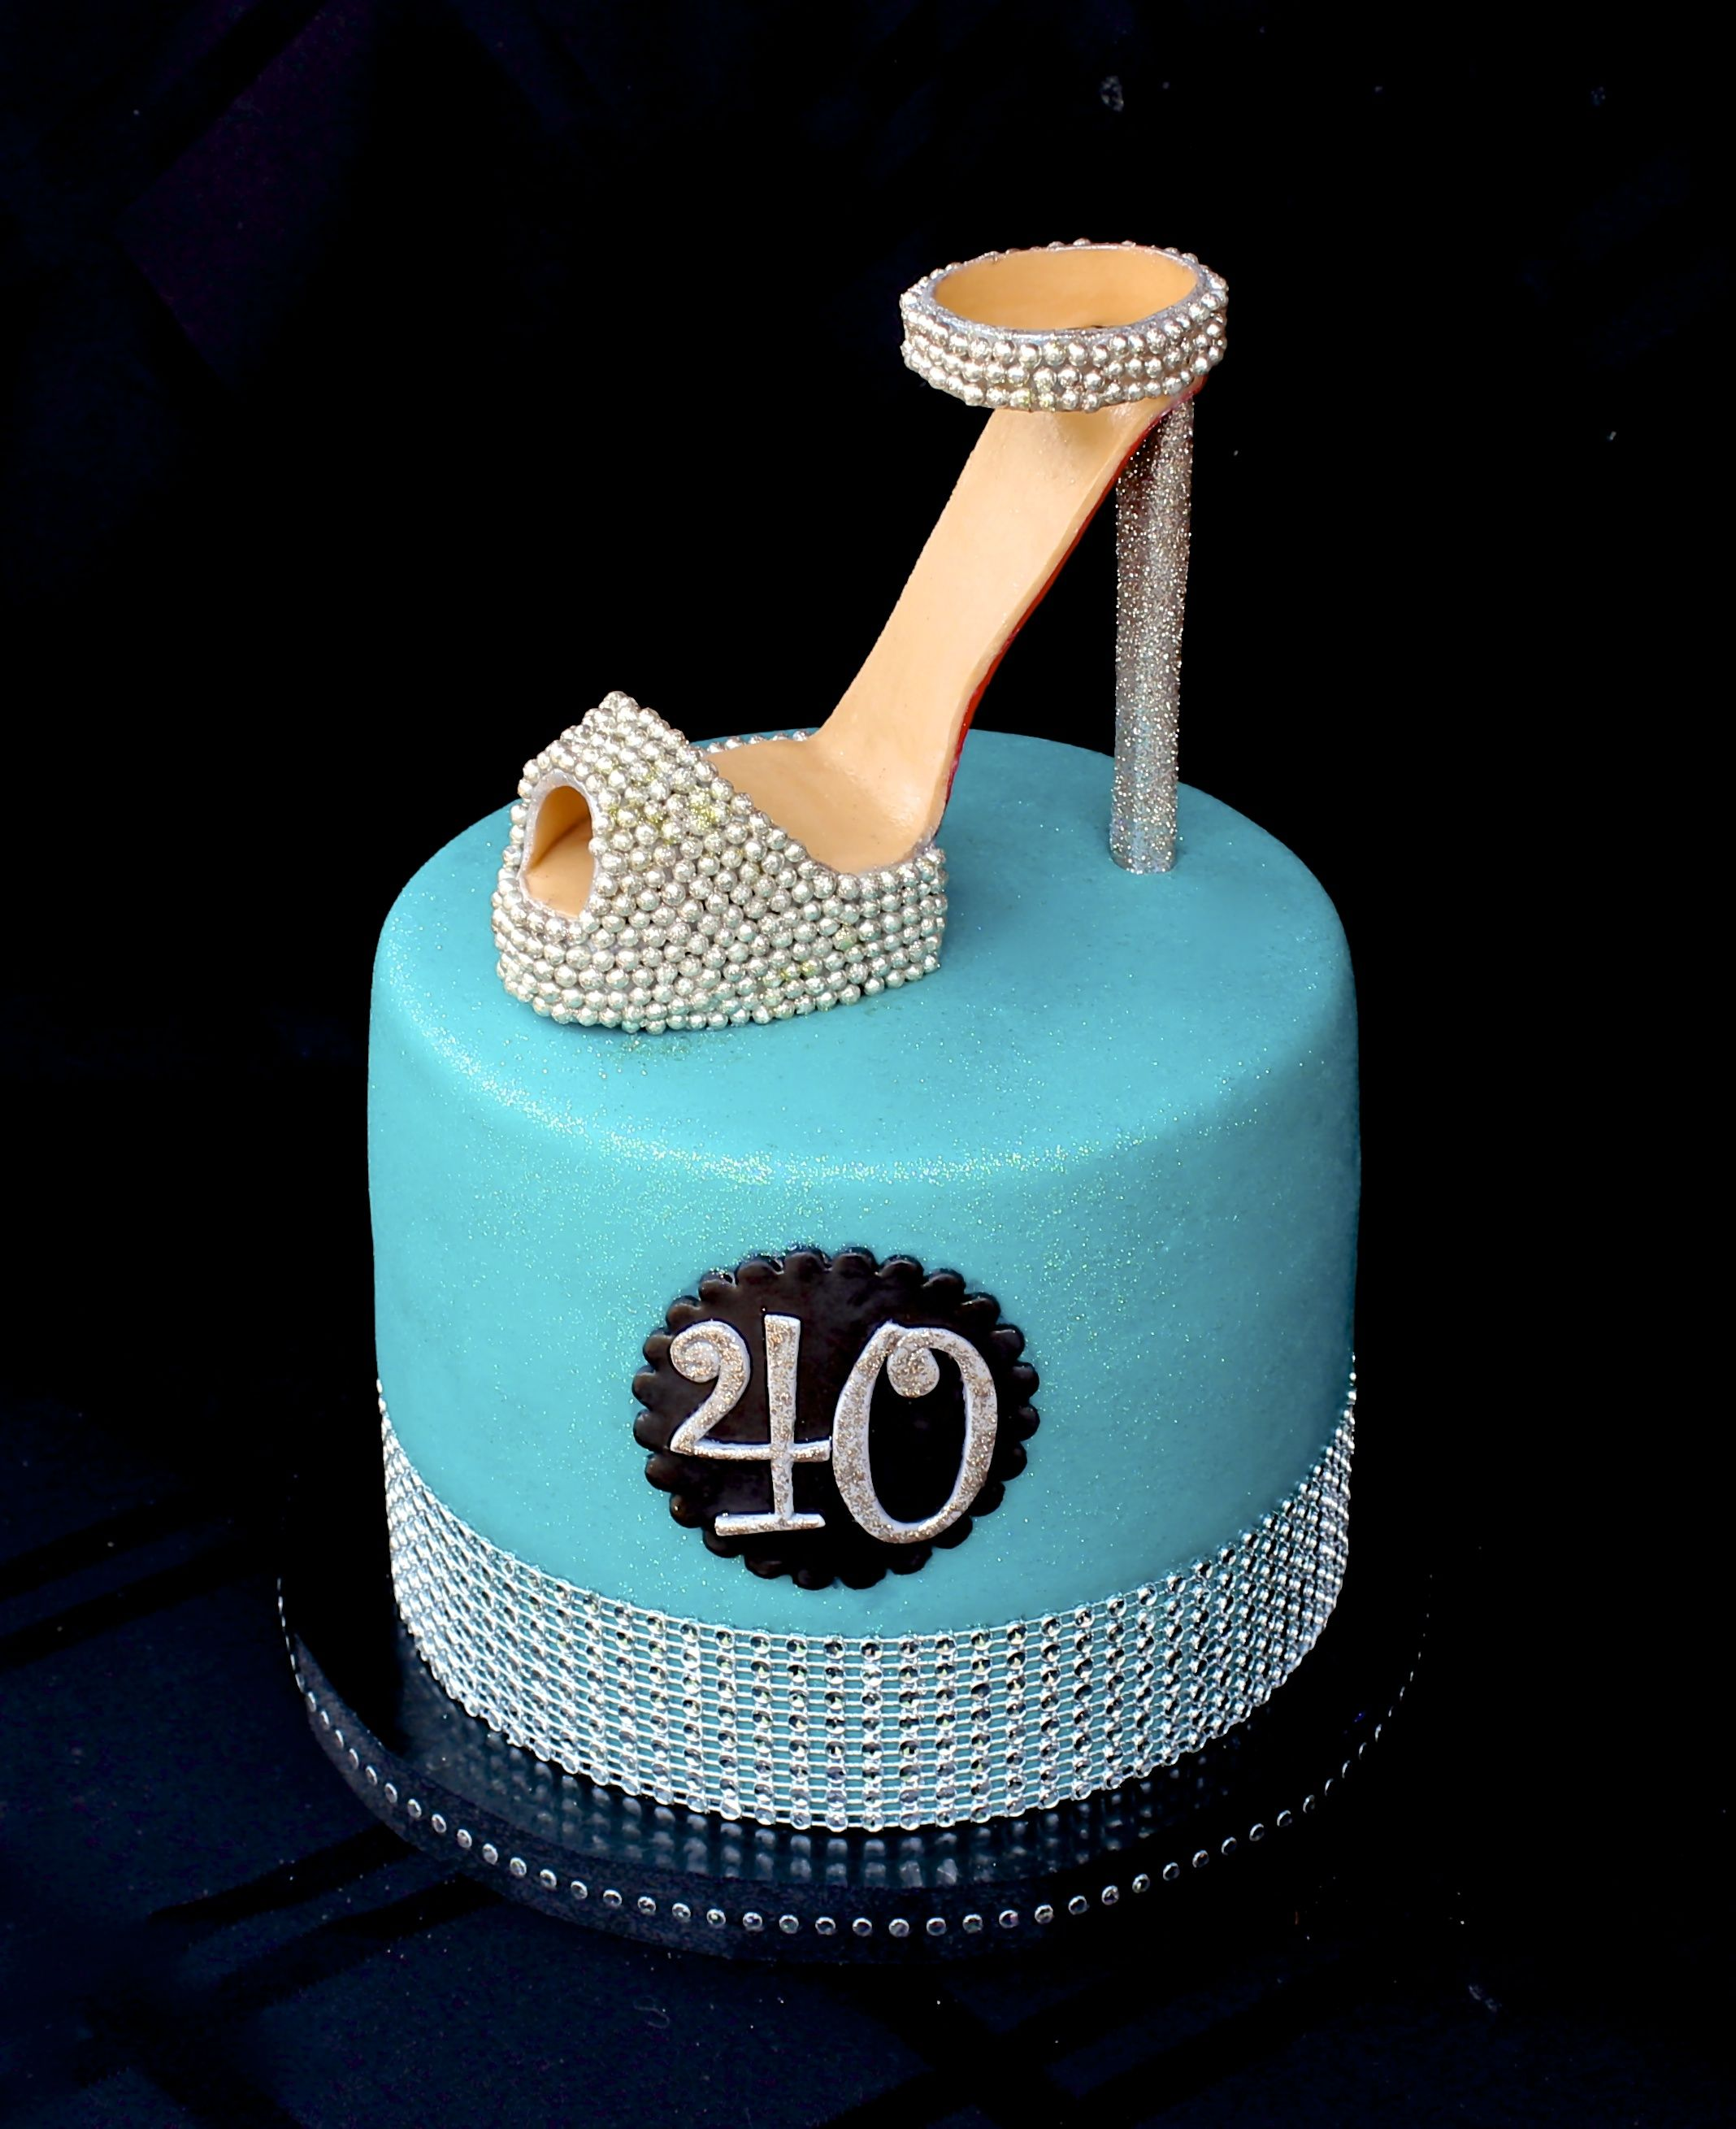 Fondant High Heel Shoe Cake 40th Birthday Cake Facebooki